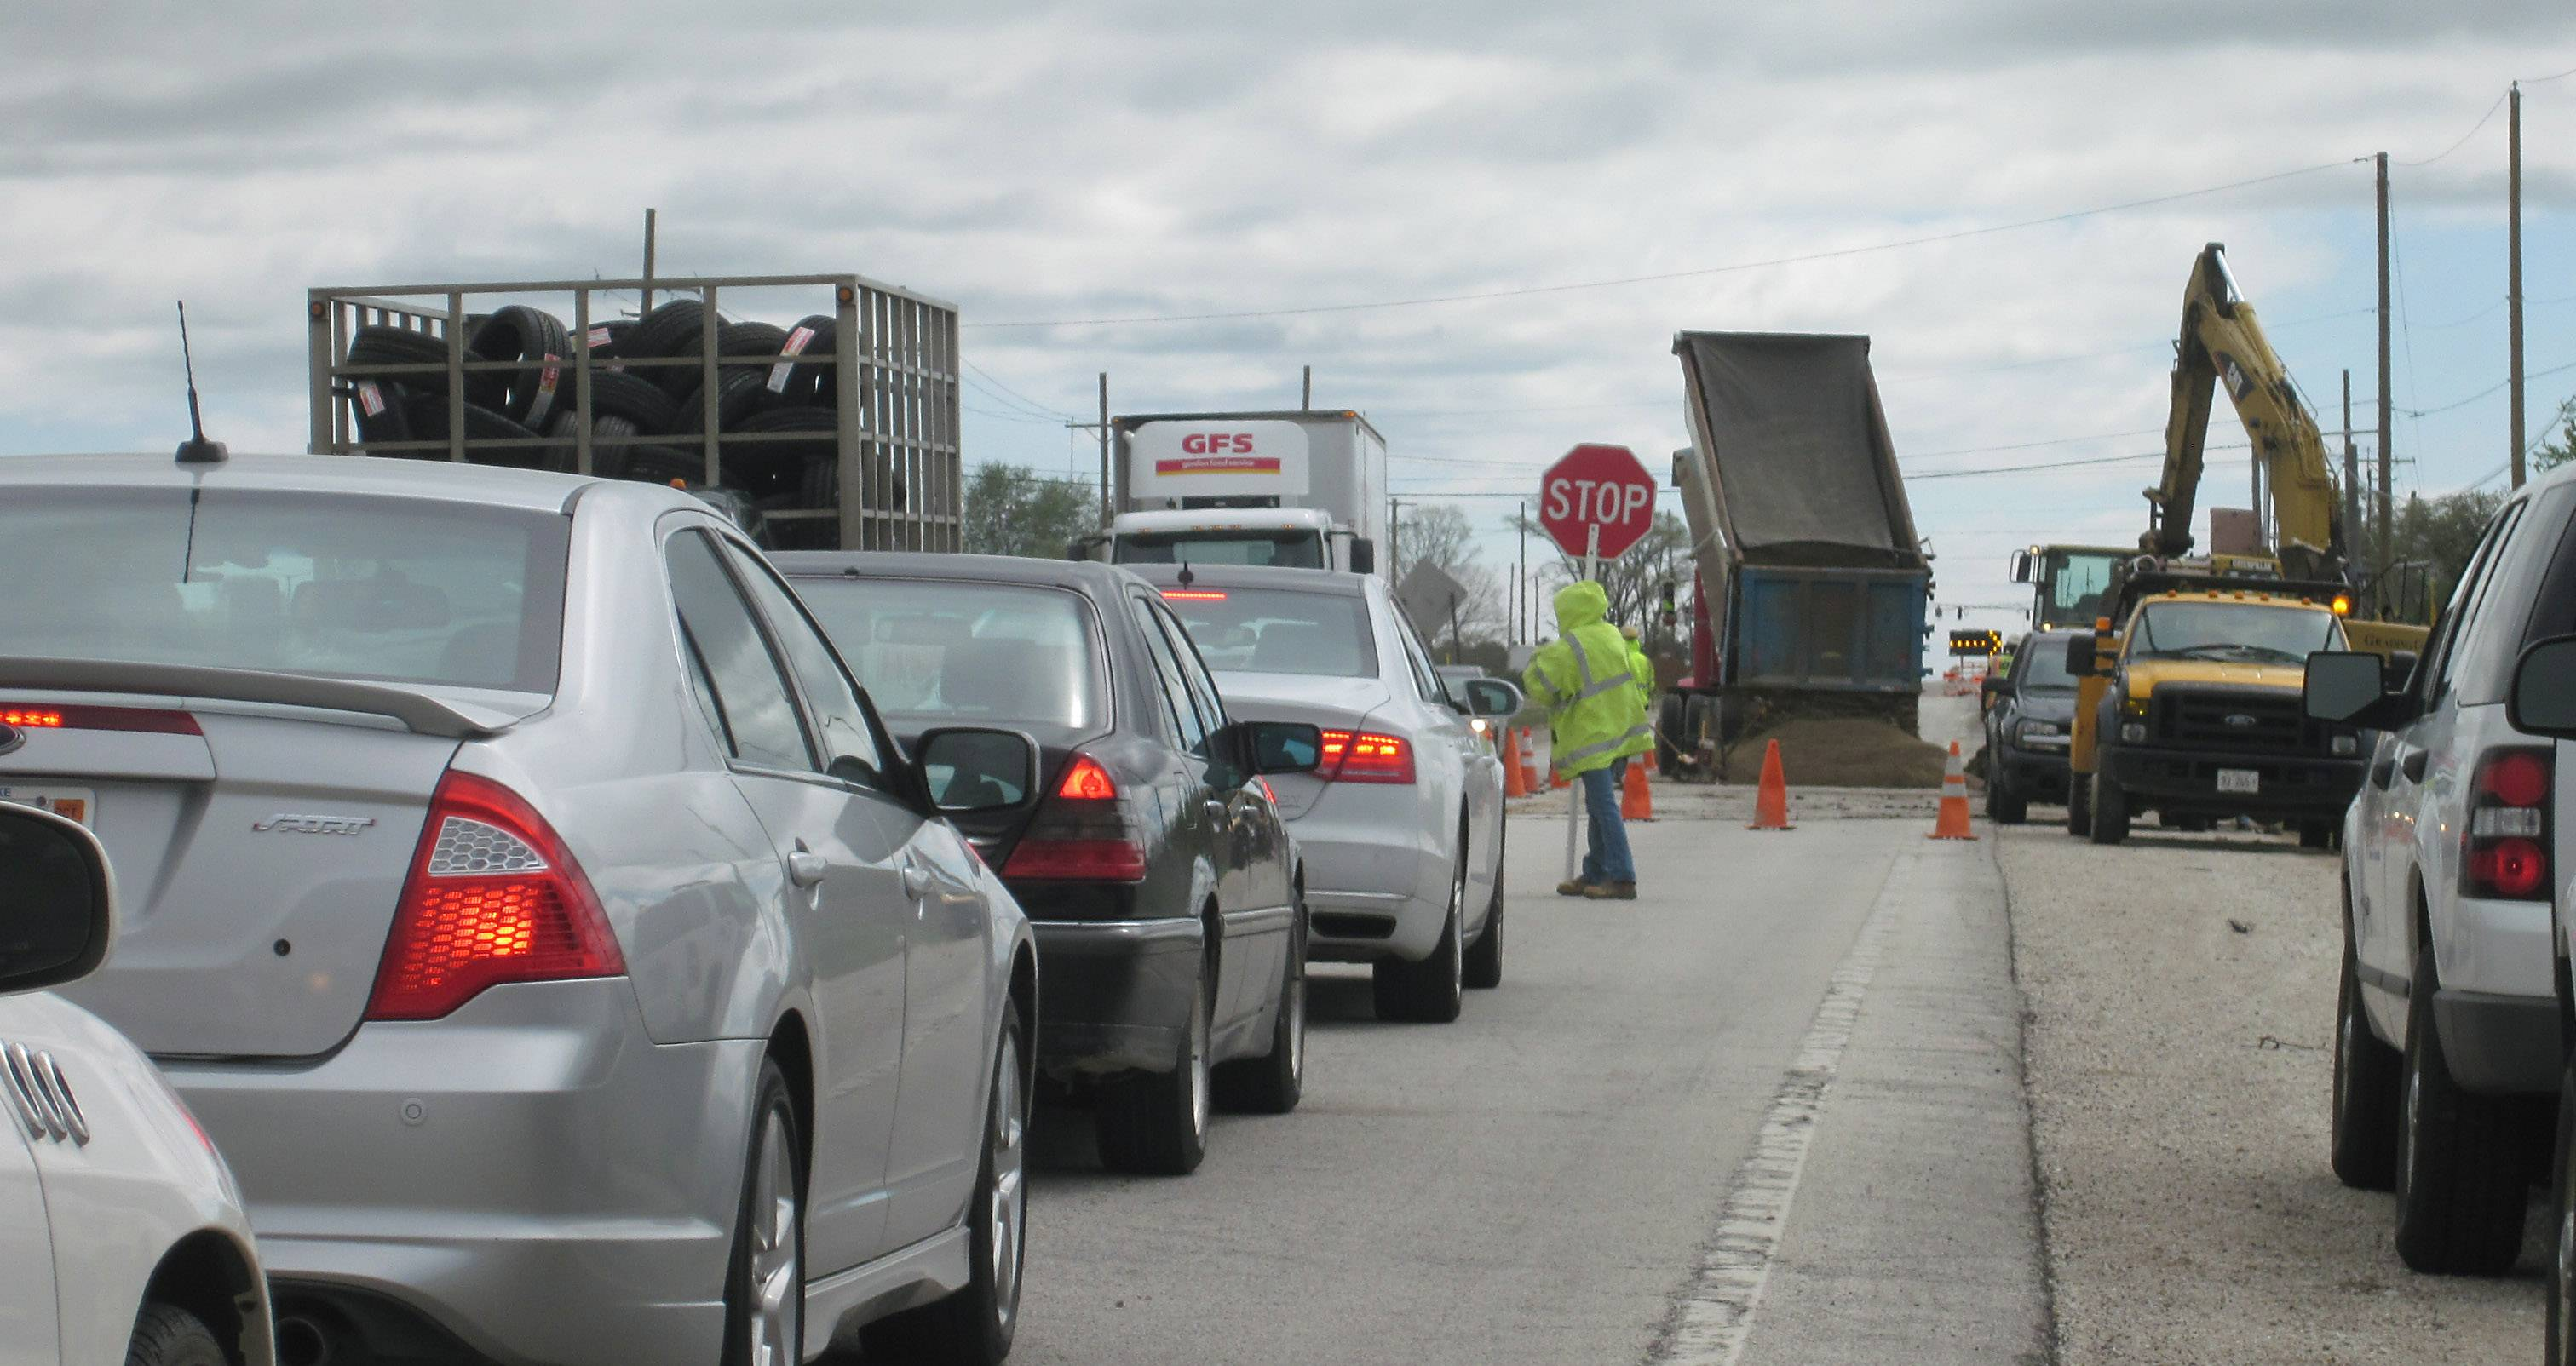 Traffic backs up Tuesday morning for road construction along Peterson Road near Grayslake. The second stage of work on the Peterson road project is getting underway, officials said.